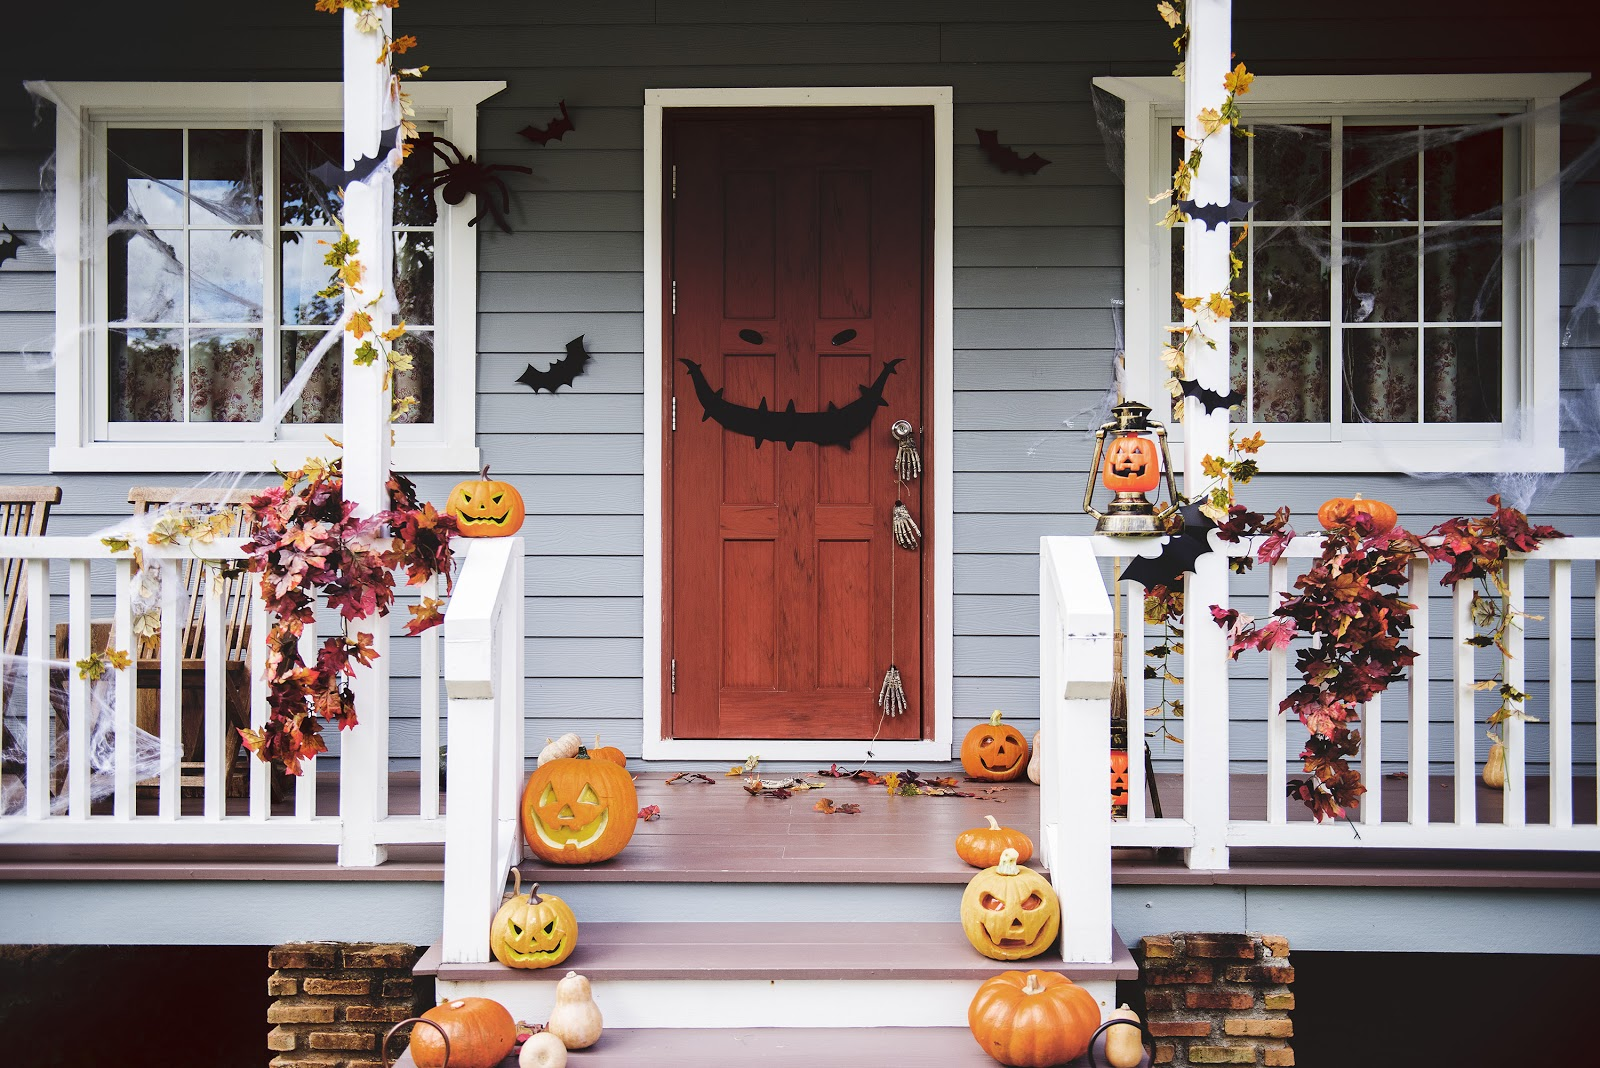 The front of a house is adorned with Halloween decorations.